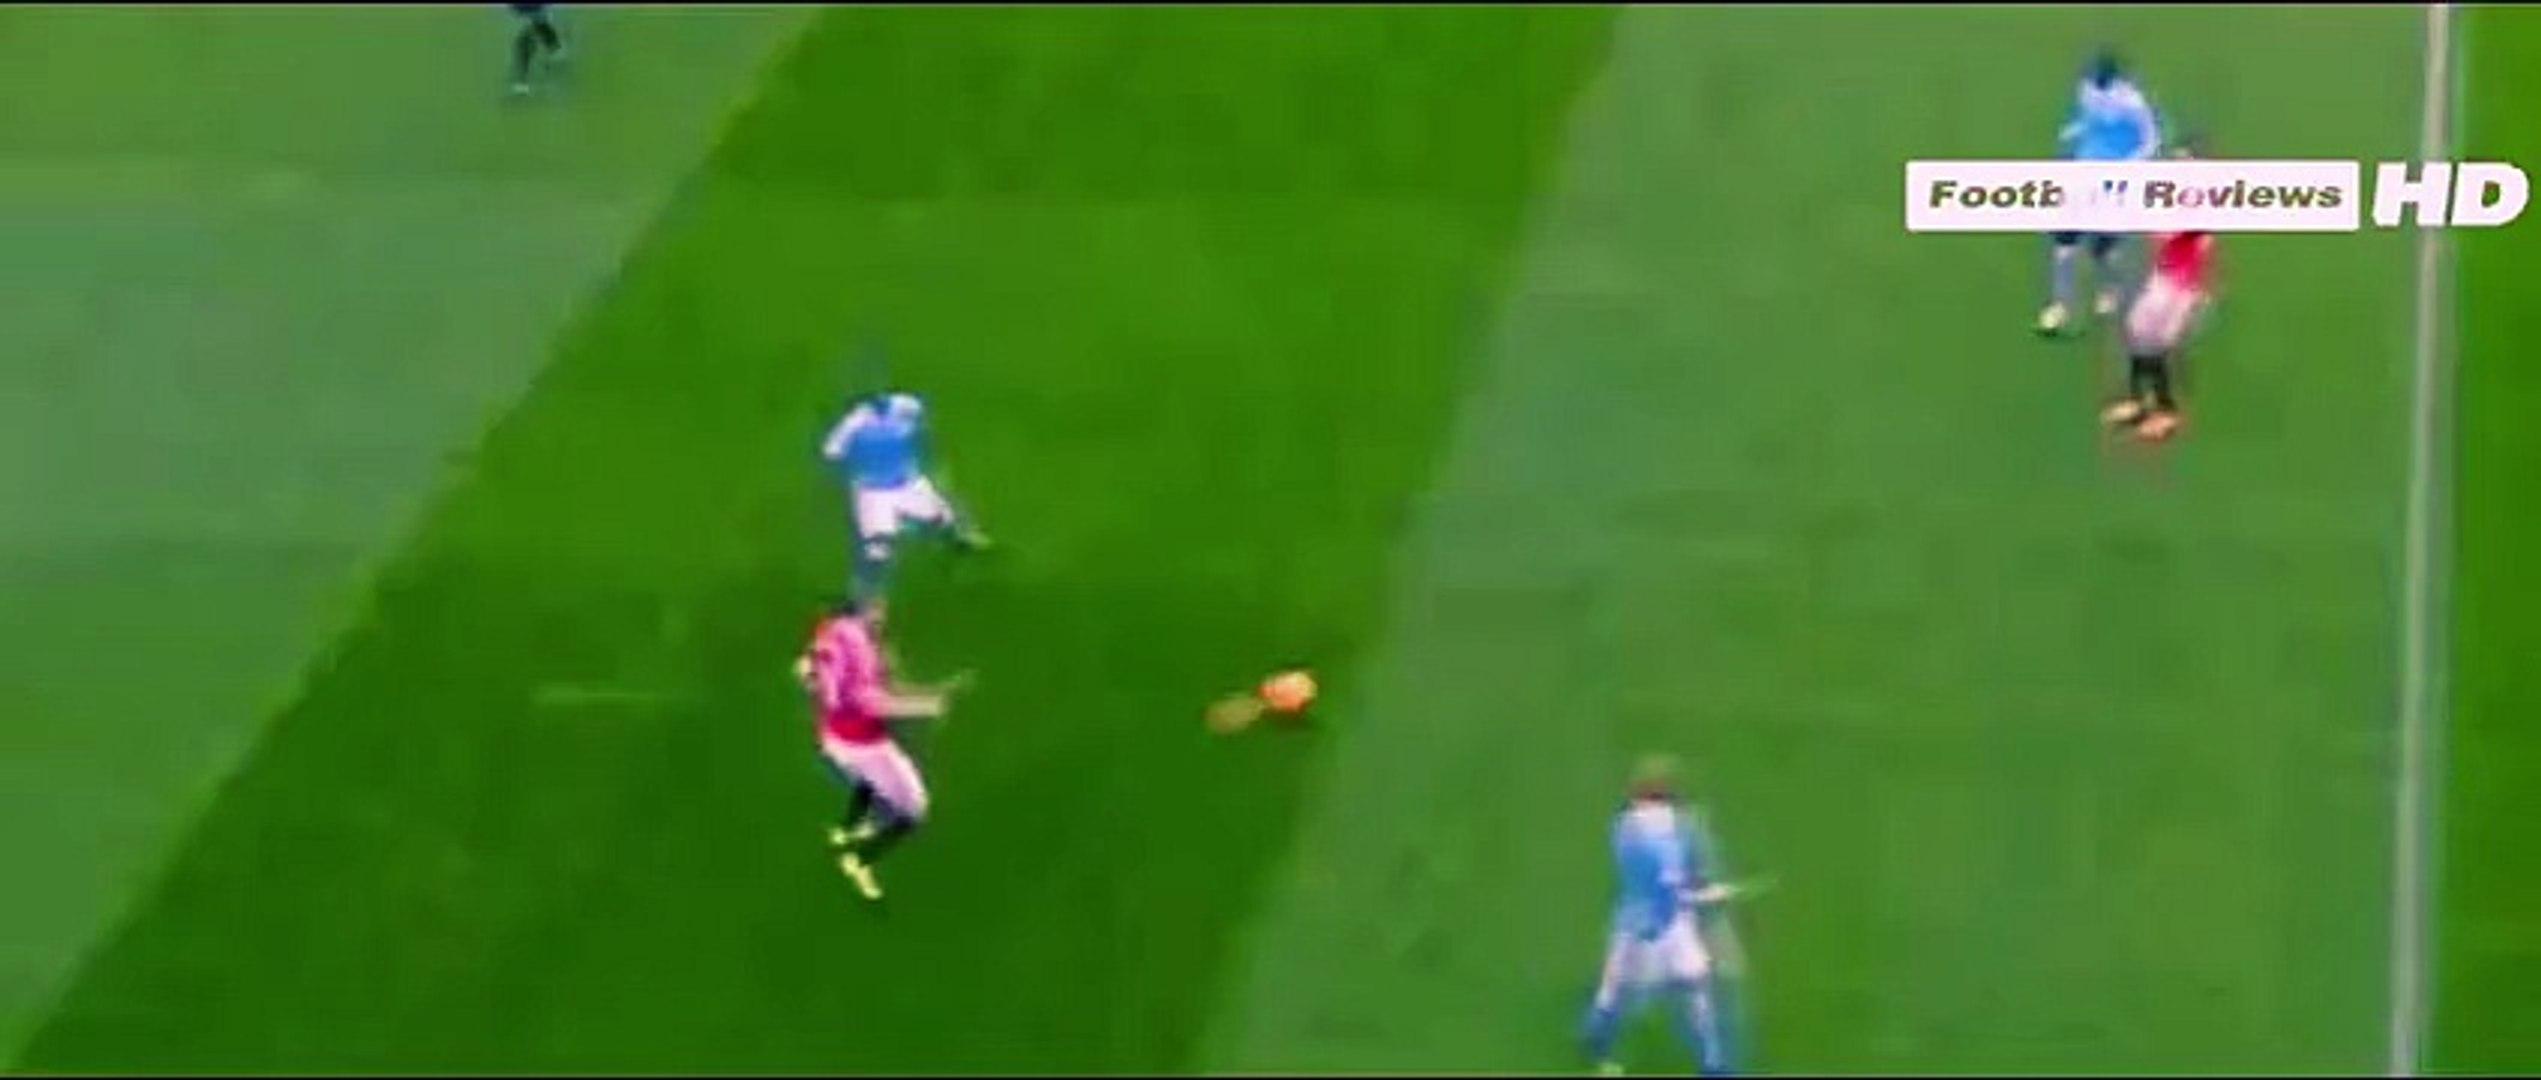 Manchester United vs Manchester City 2015 - Anthony Martial Crazy Skills